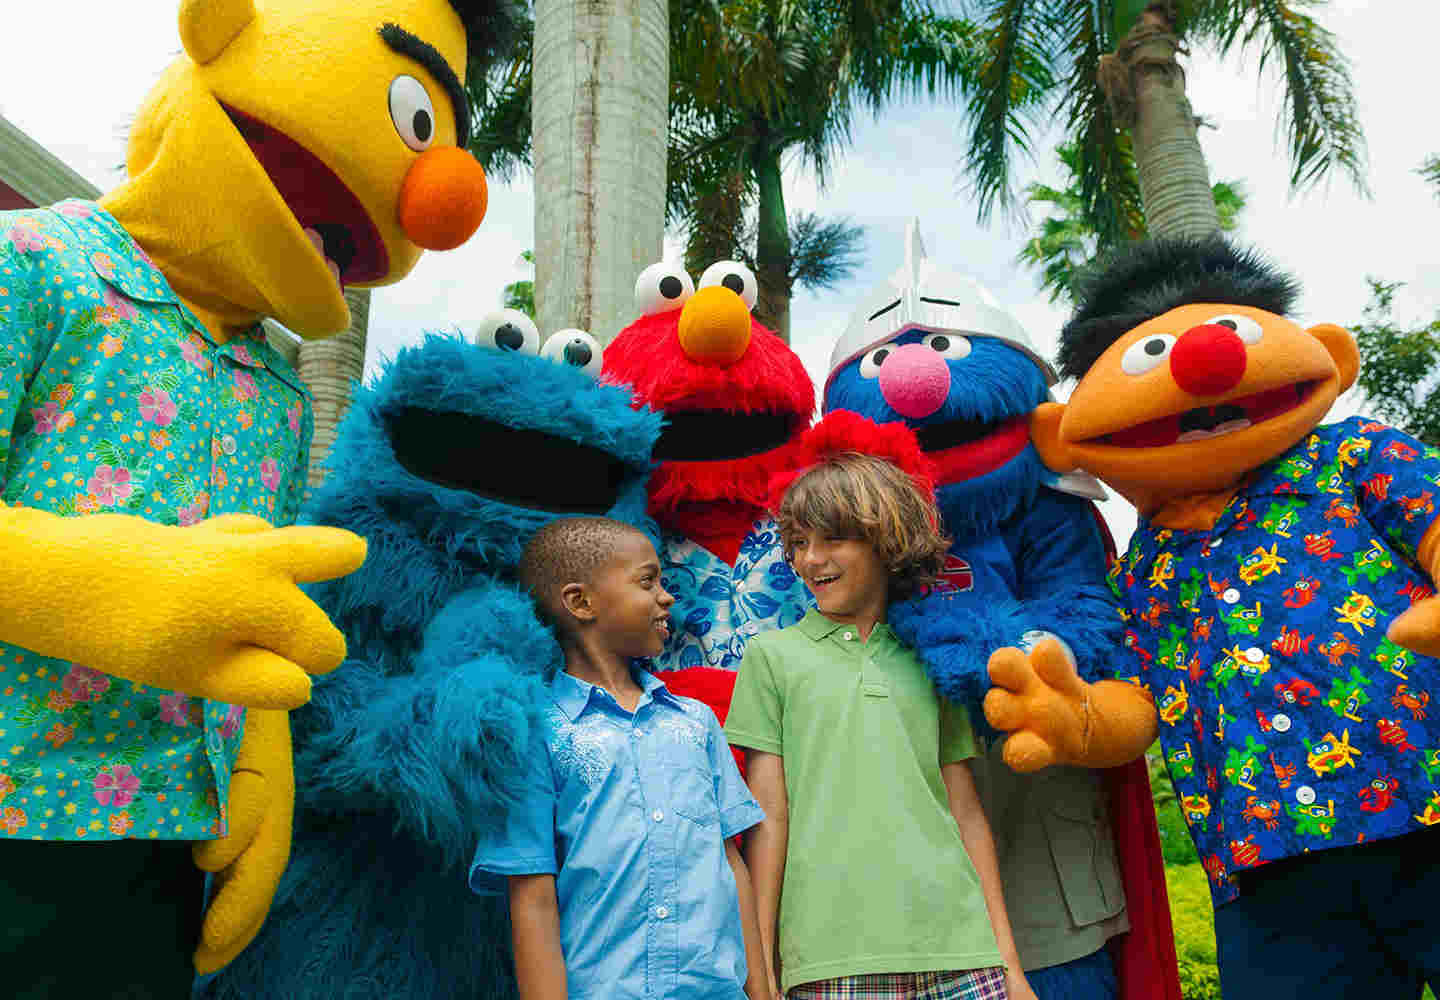 sesame street characters with kids at beaches resort in jamaica